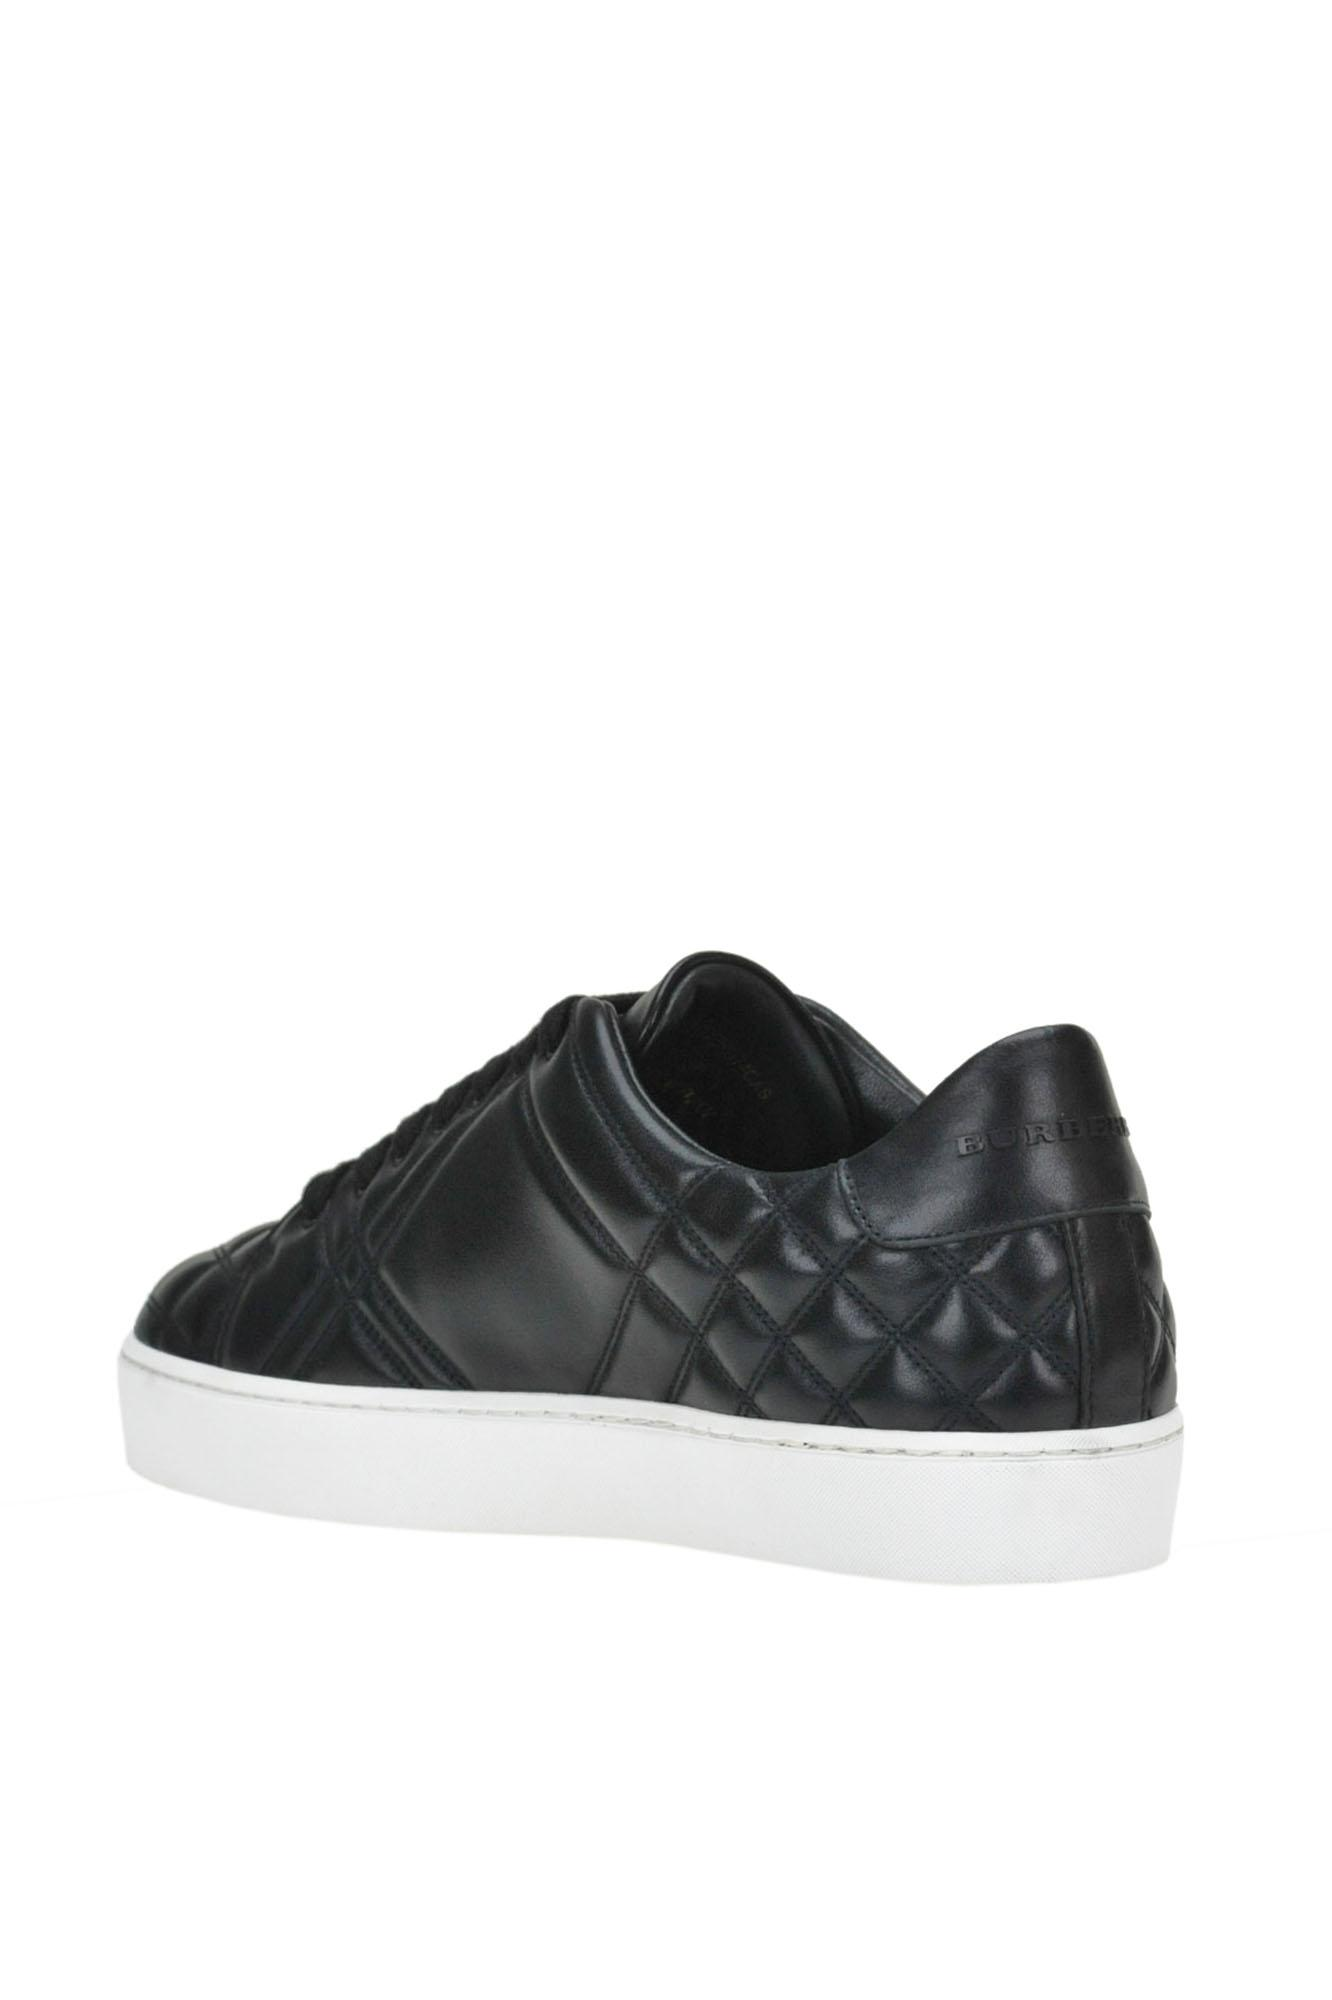 Burberry Quilted Leather Sneakers in Black